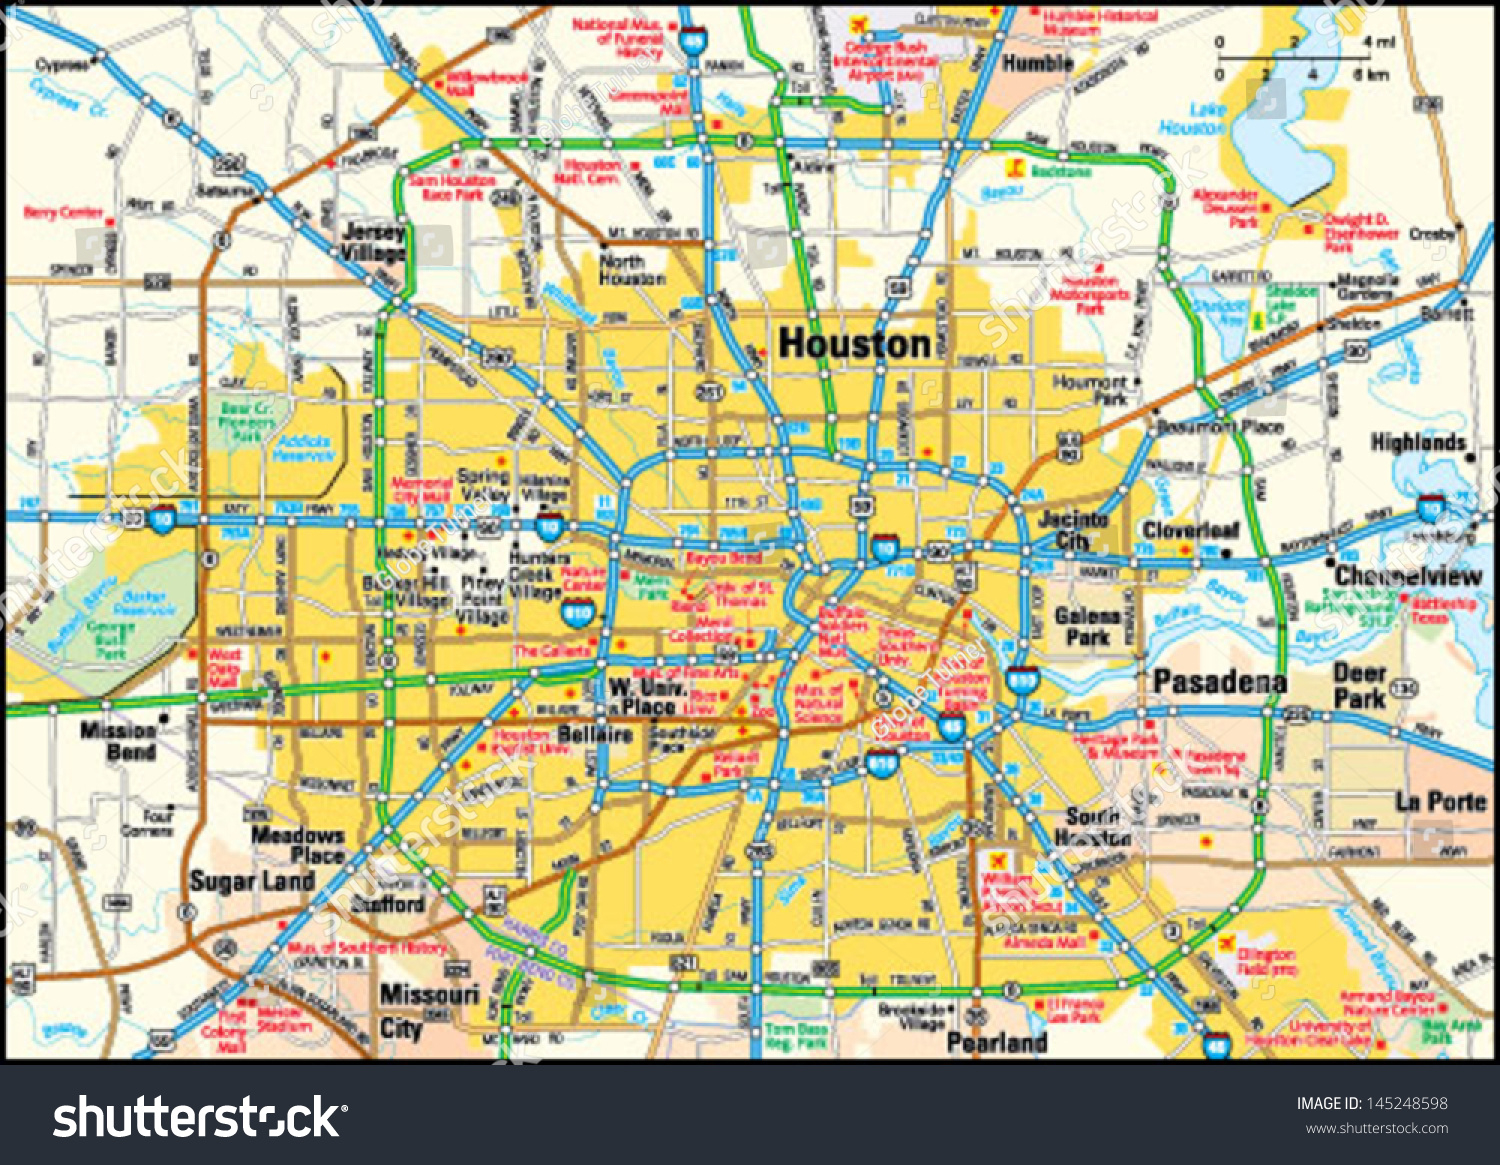 Houston Texas Area Map Stock Vector (Royalty Free) 145248598 - Map To Houston Texas